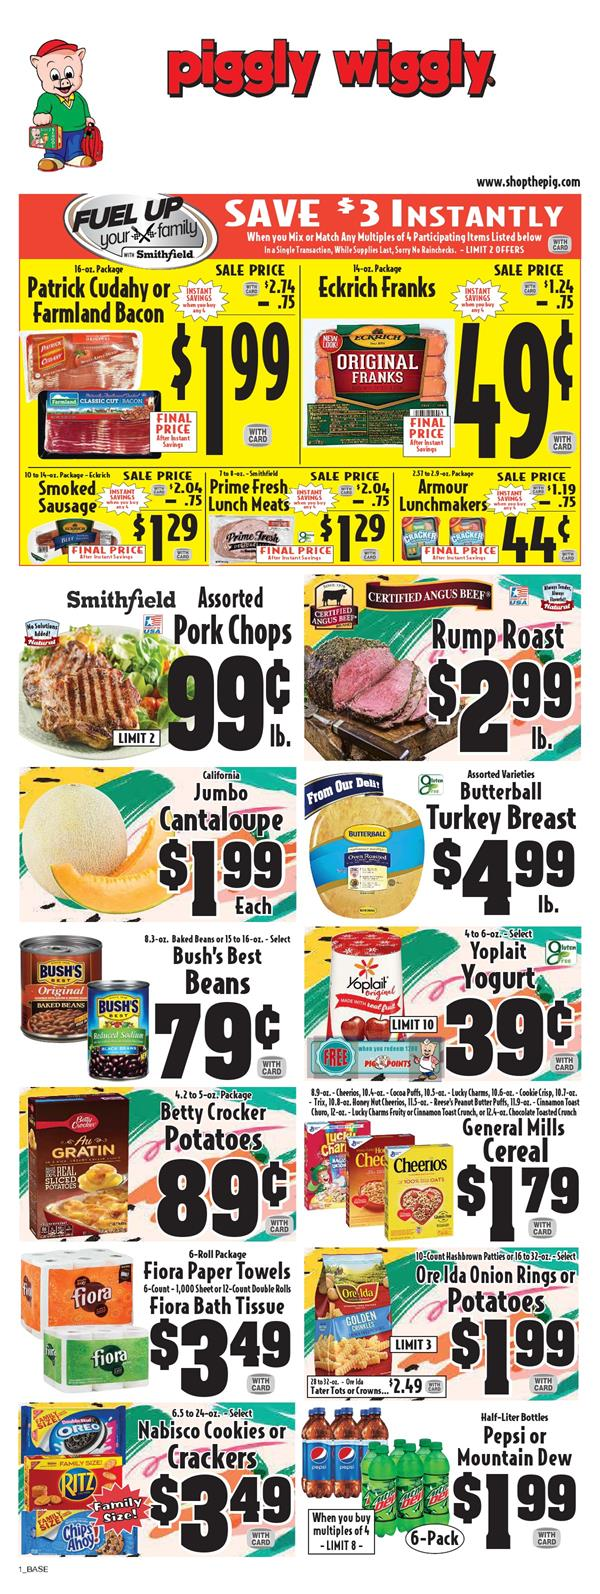 Ad Specials Wiggly Piggly Weekly